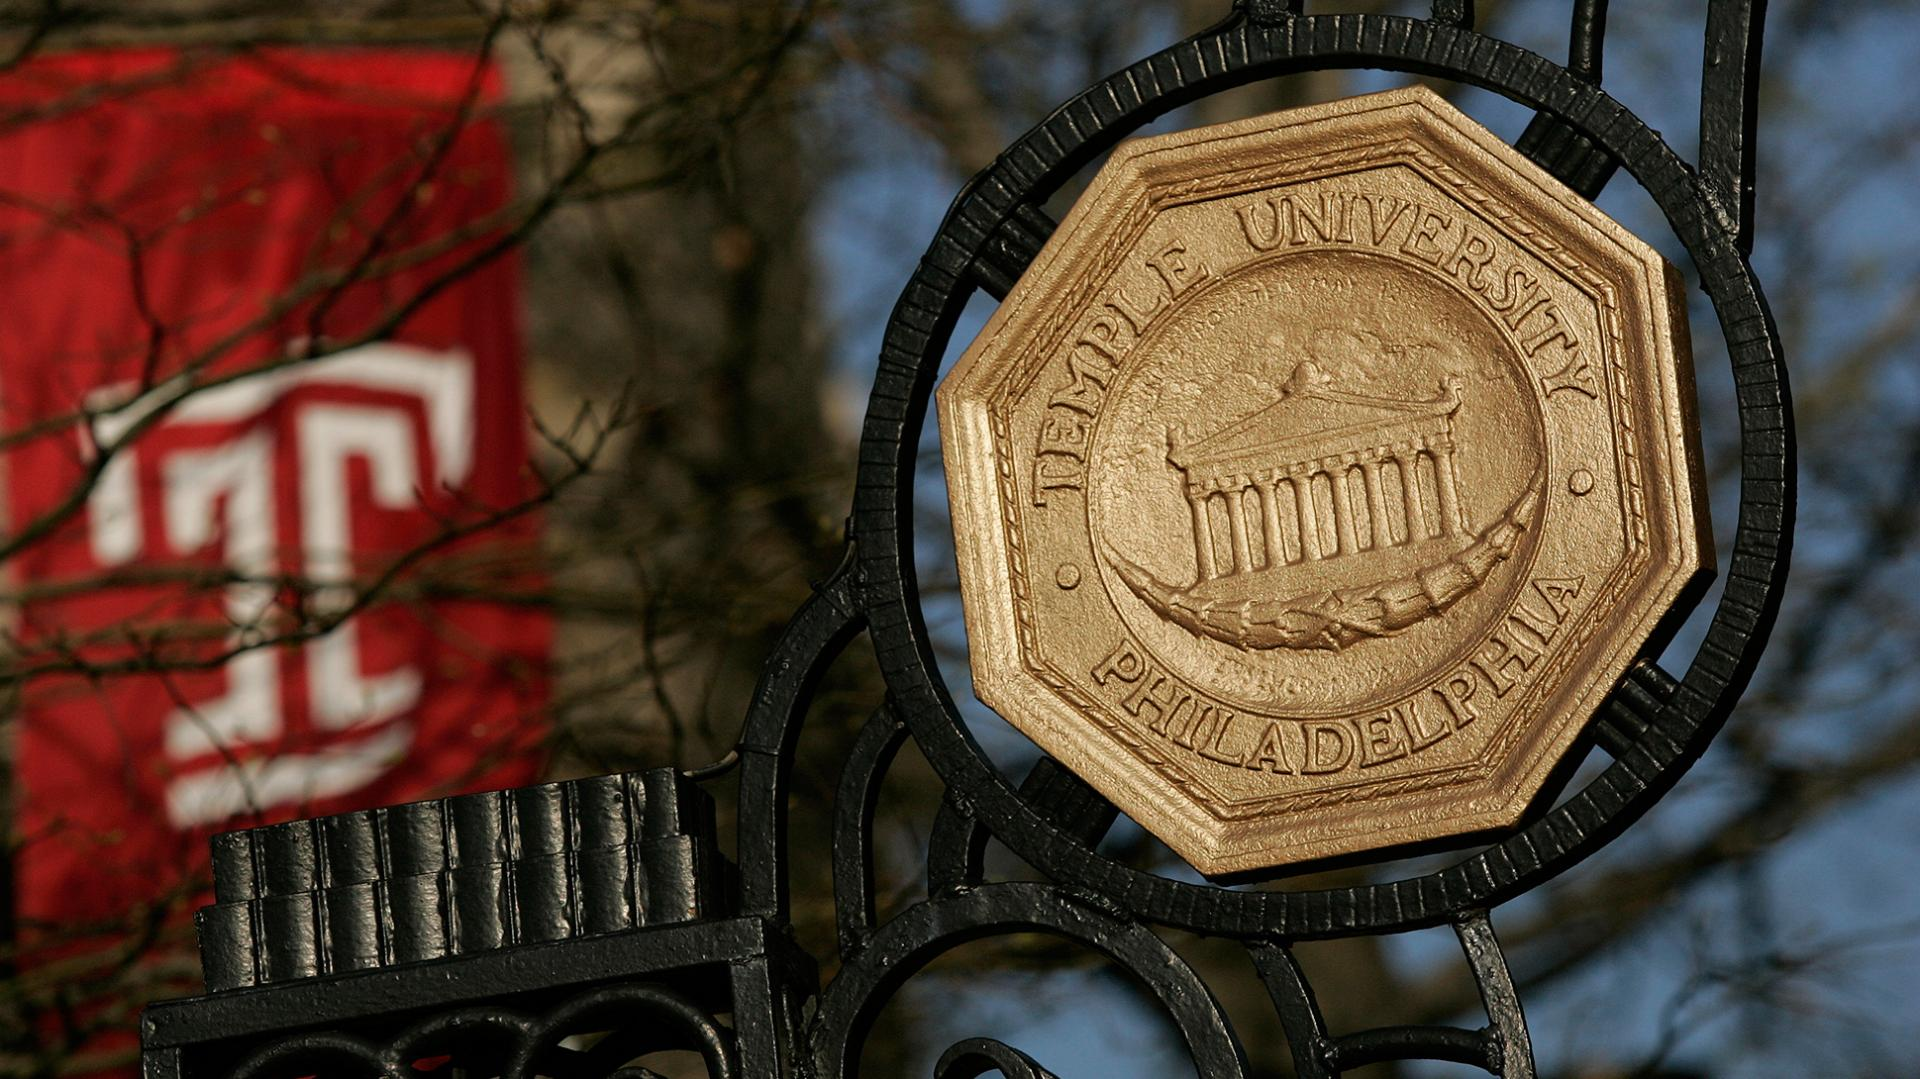 Temple University Seal in brass hangs on a gate as entrance to campus